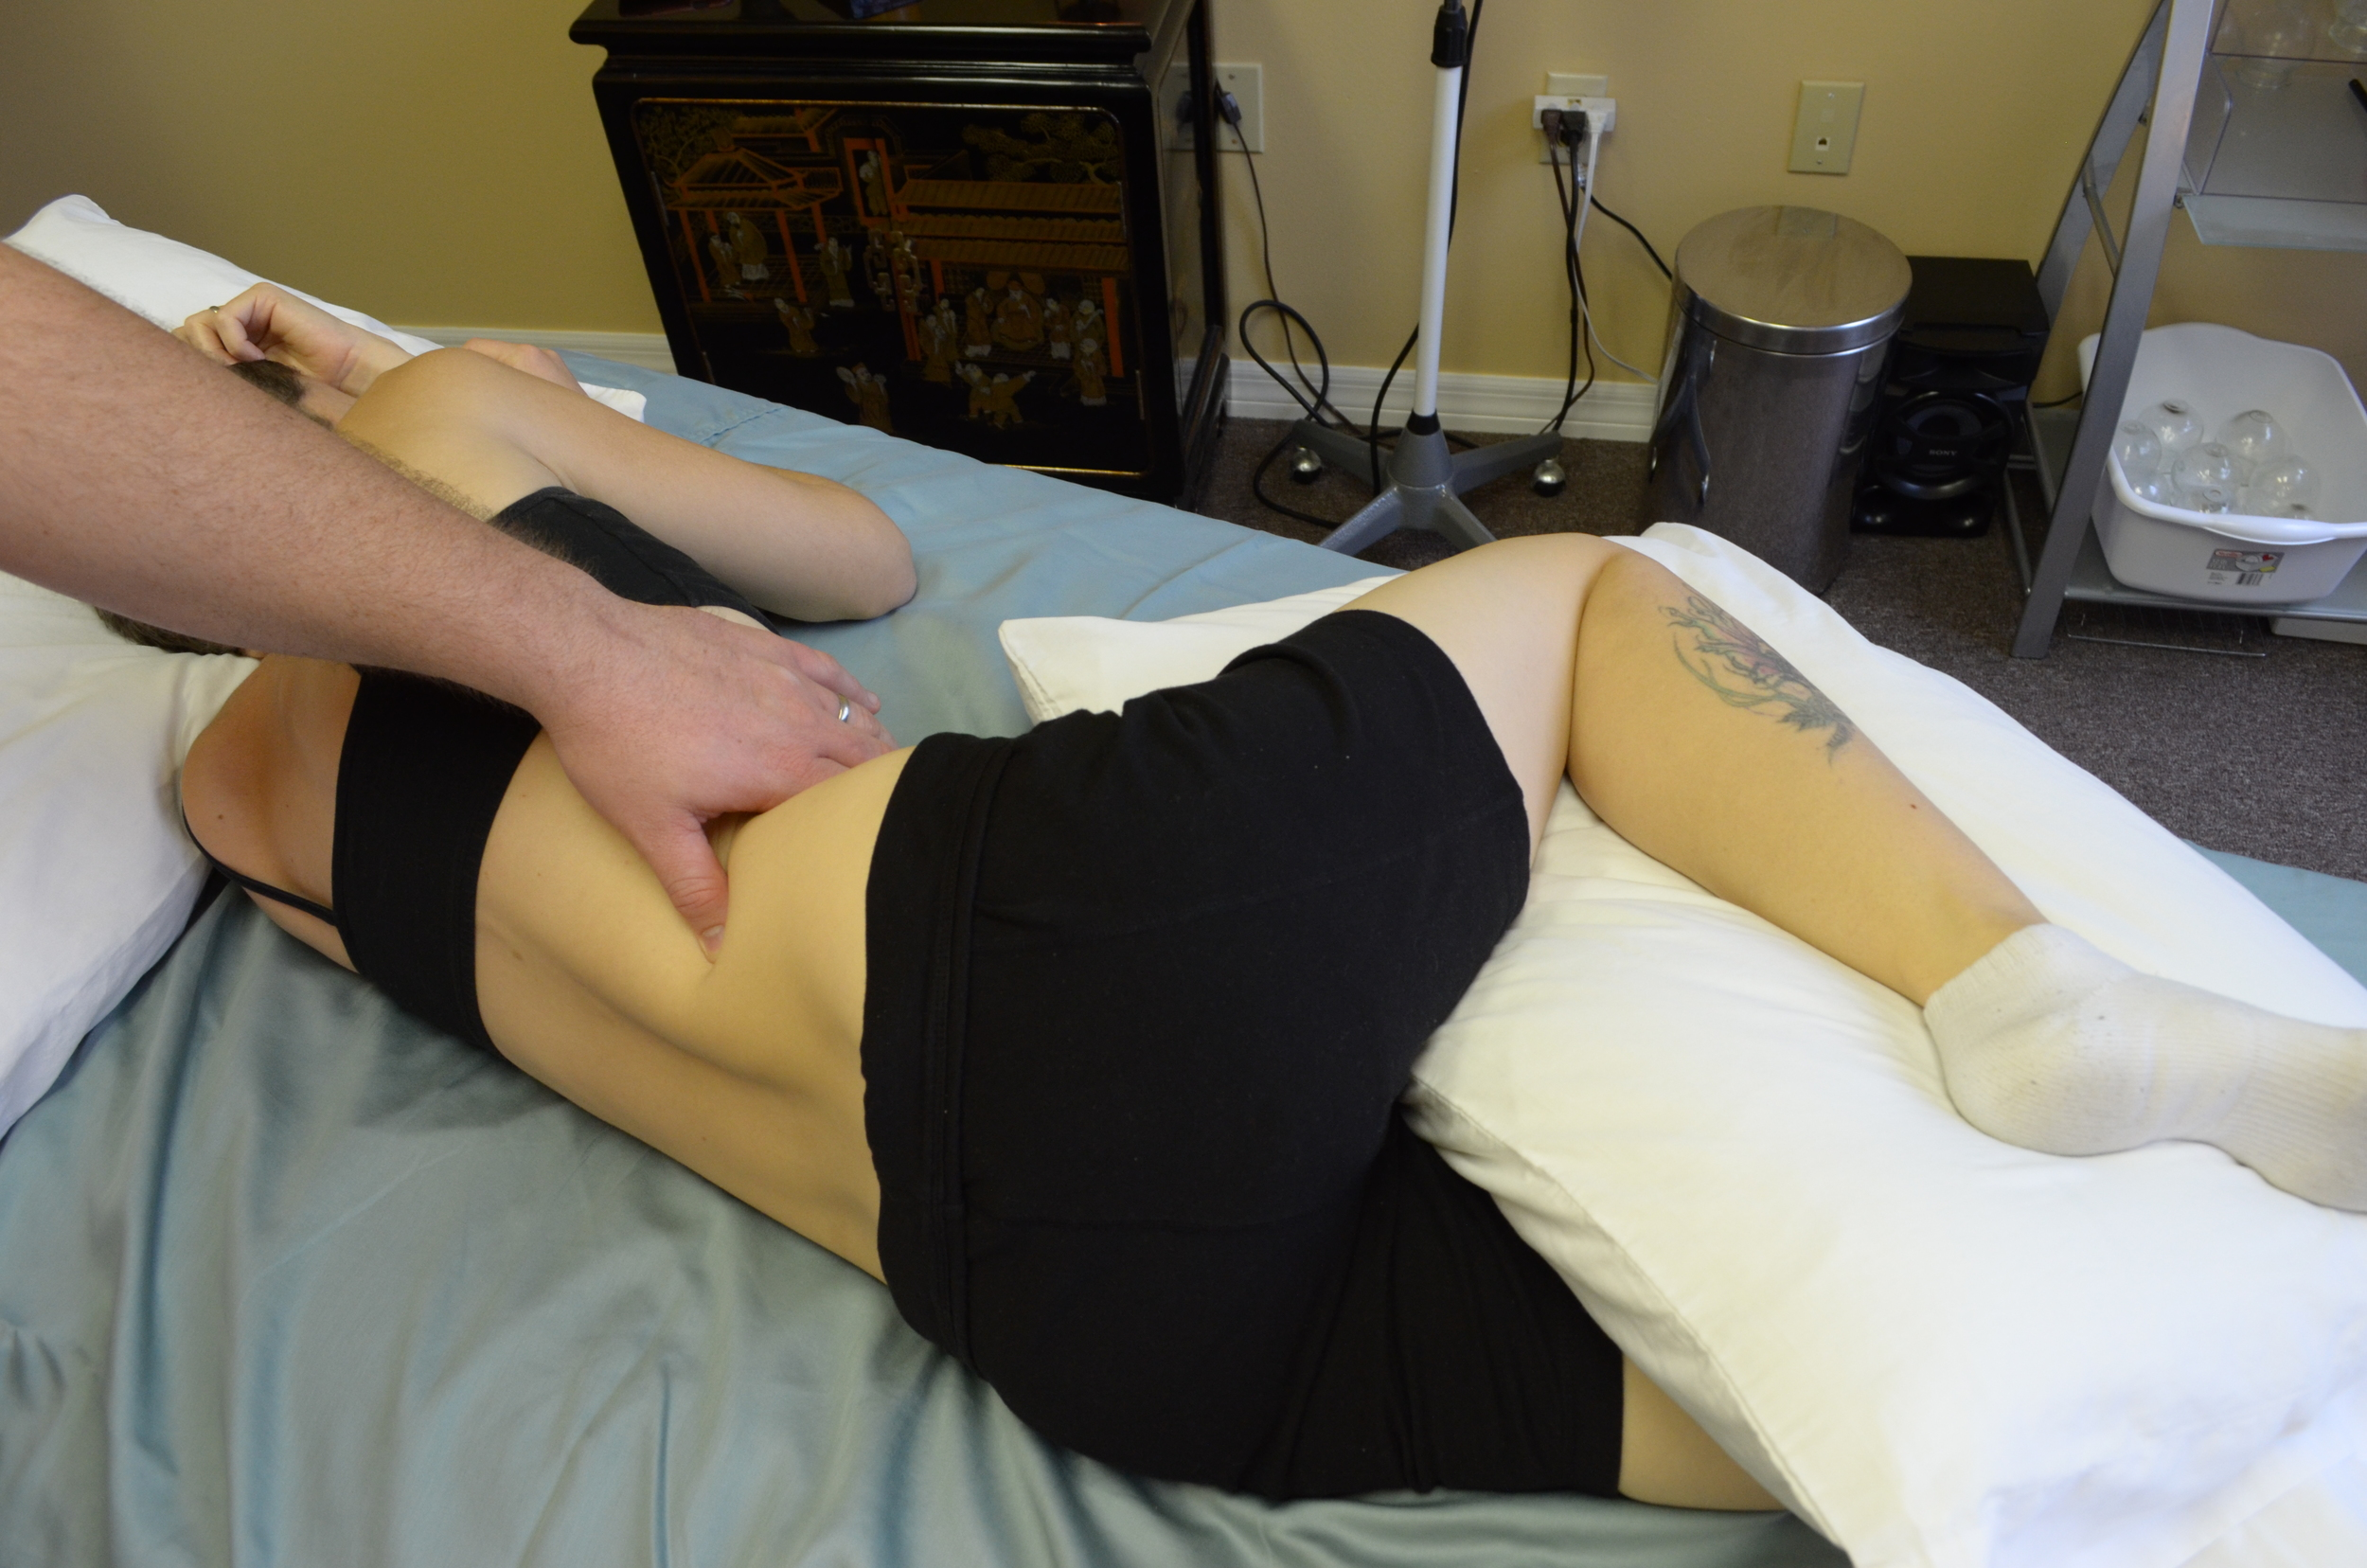 Trigger Point & Positional Release for Low Back Pain. Great deep tissue massage technique used in Orlando, Florida